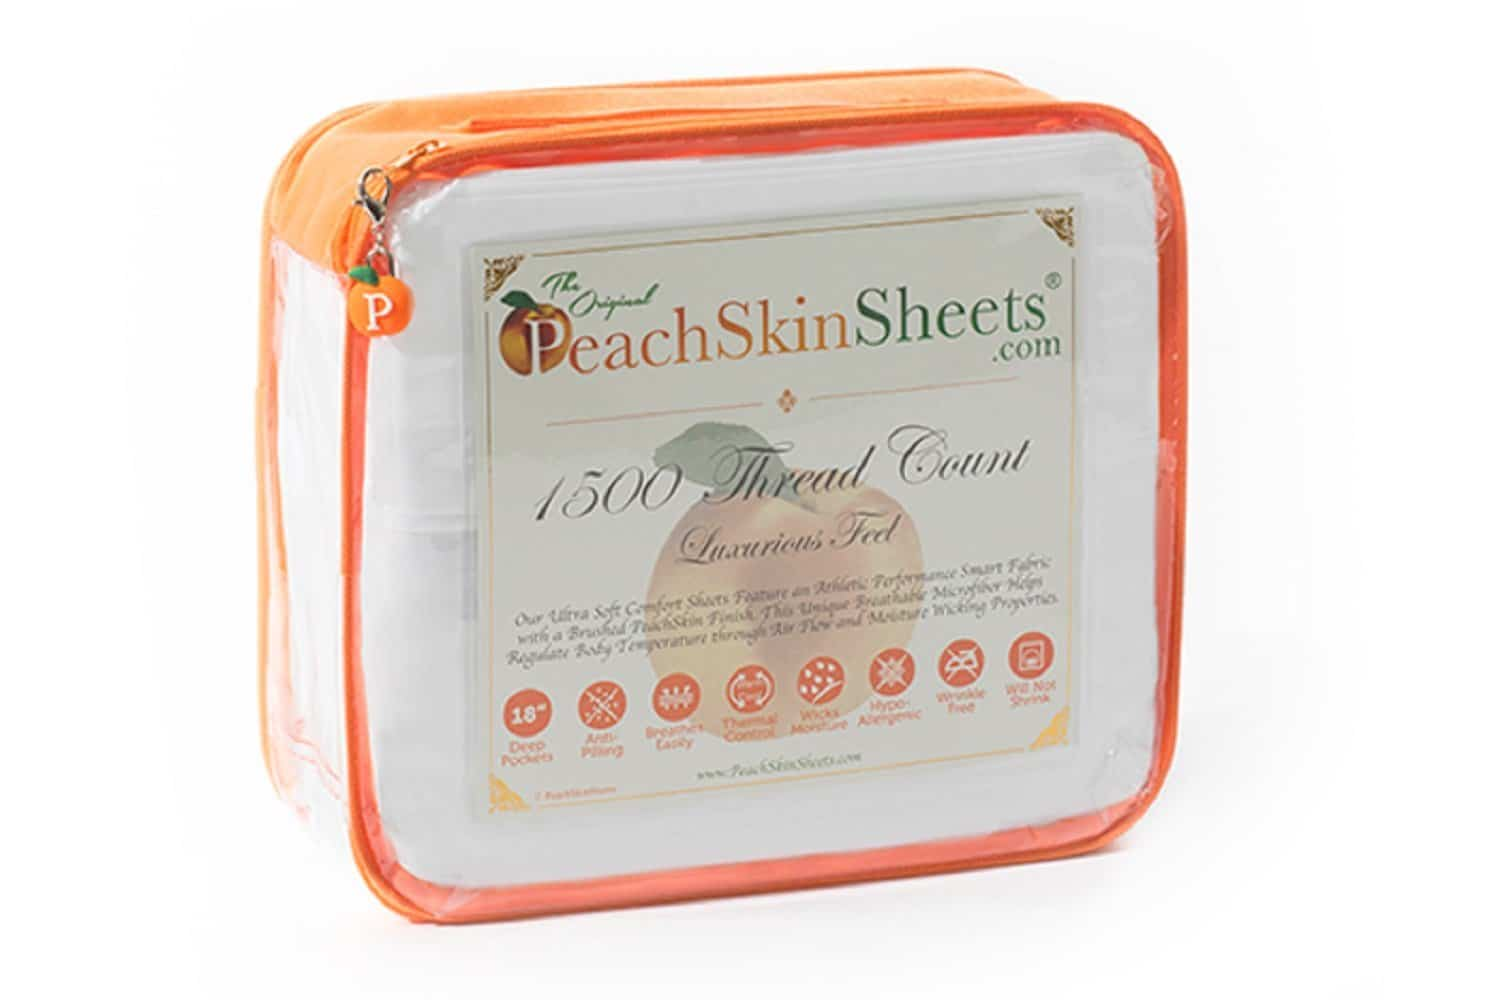 Peachskin Sheets Reviews of 2018-22 Reasons to Buy Peachskin Sheets